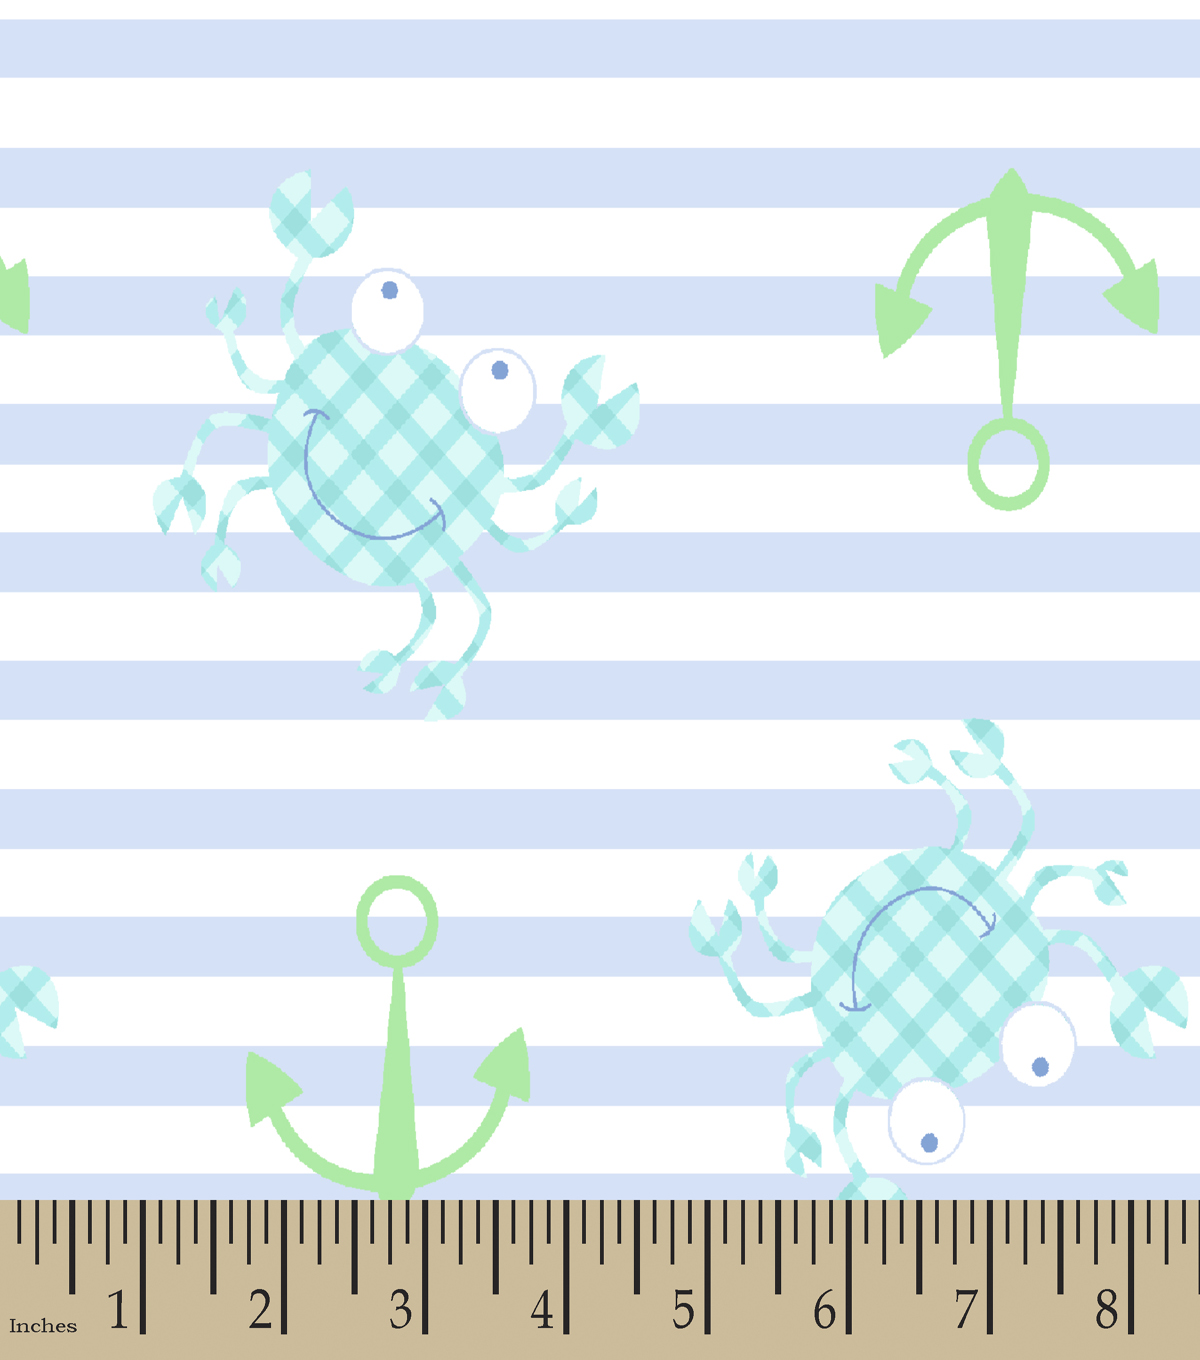 Blue Gingham Crab Print Fabric